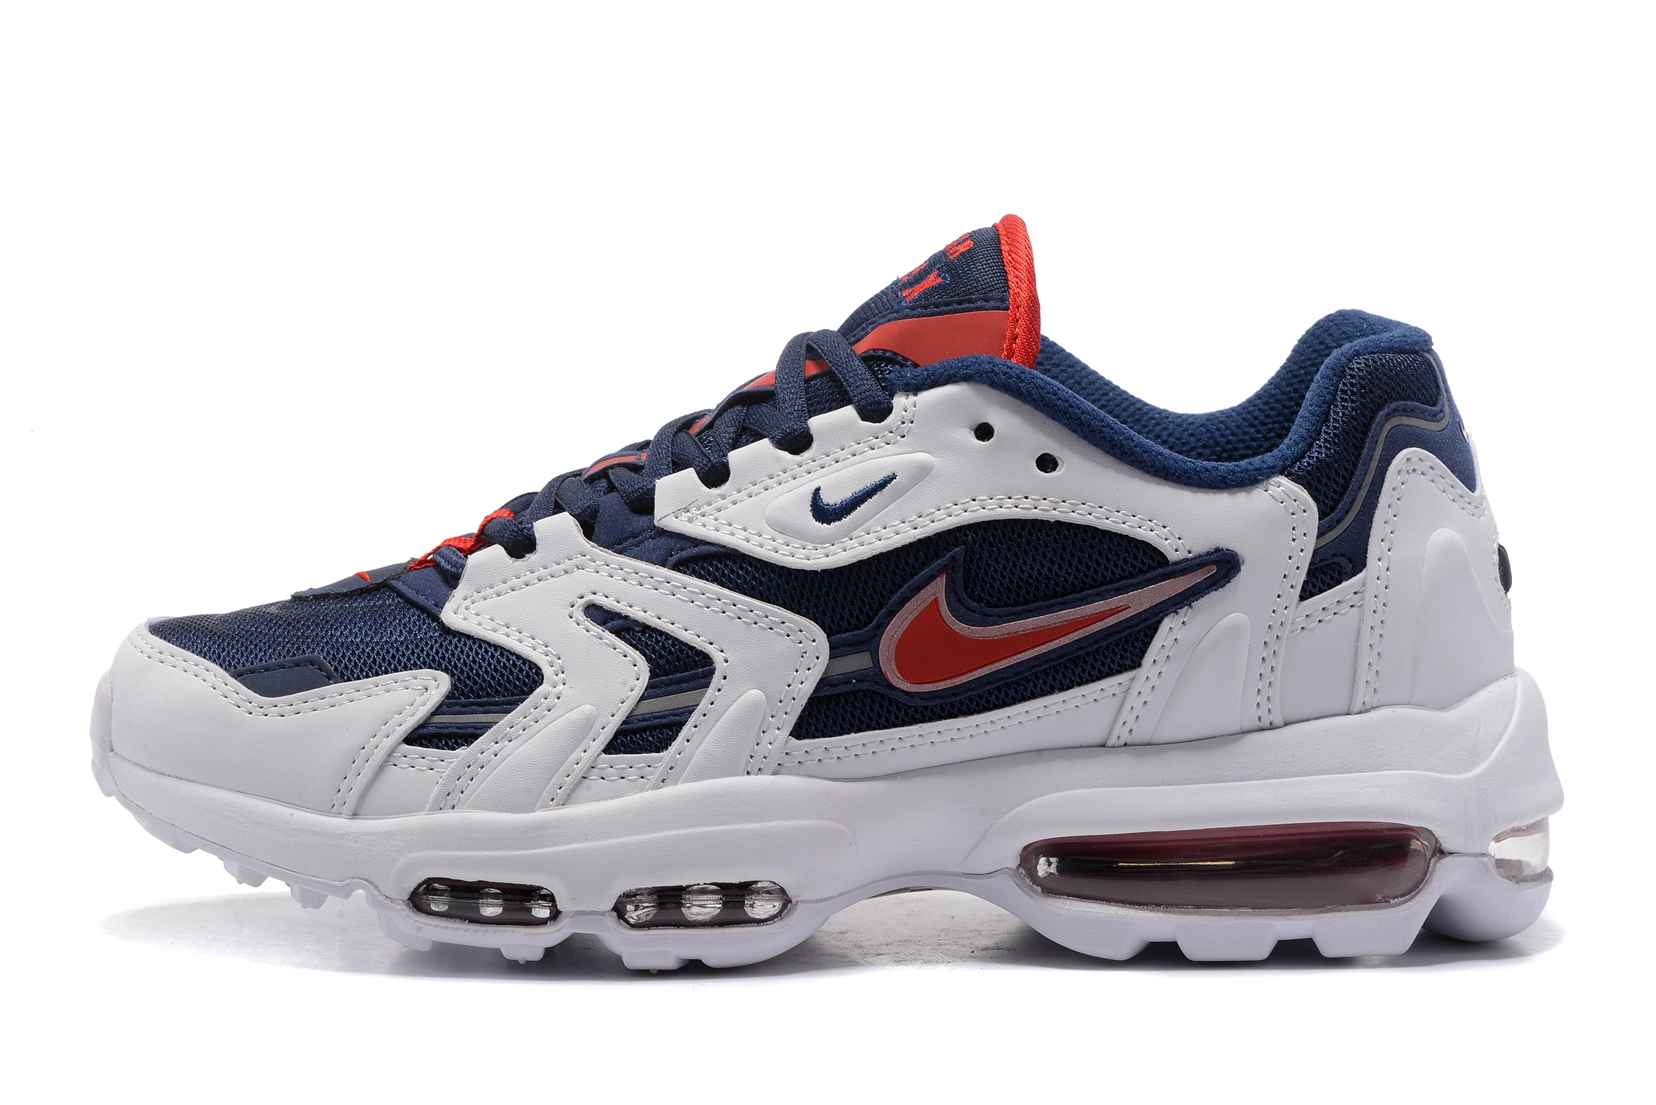 Nike Air Max 96 blue white red Men Running Shoes